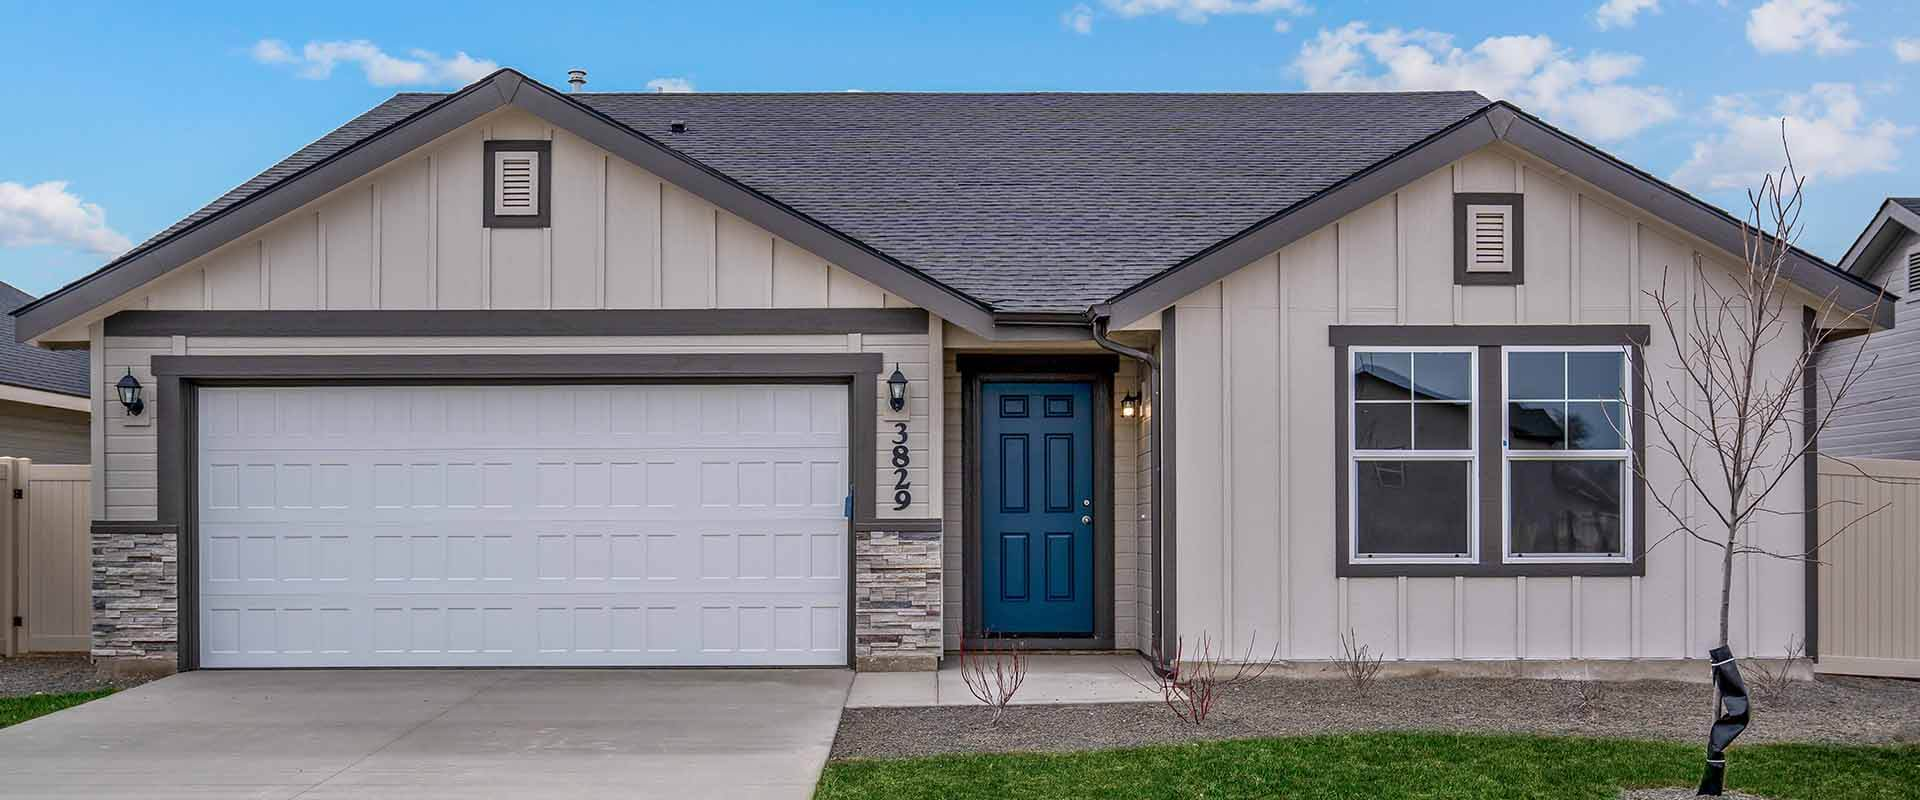 Crestwood_Hubble_Homes_New_Homes_Boise_Exterior2.jpg